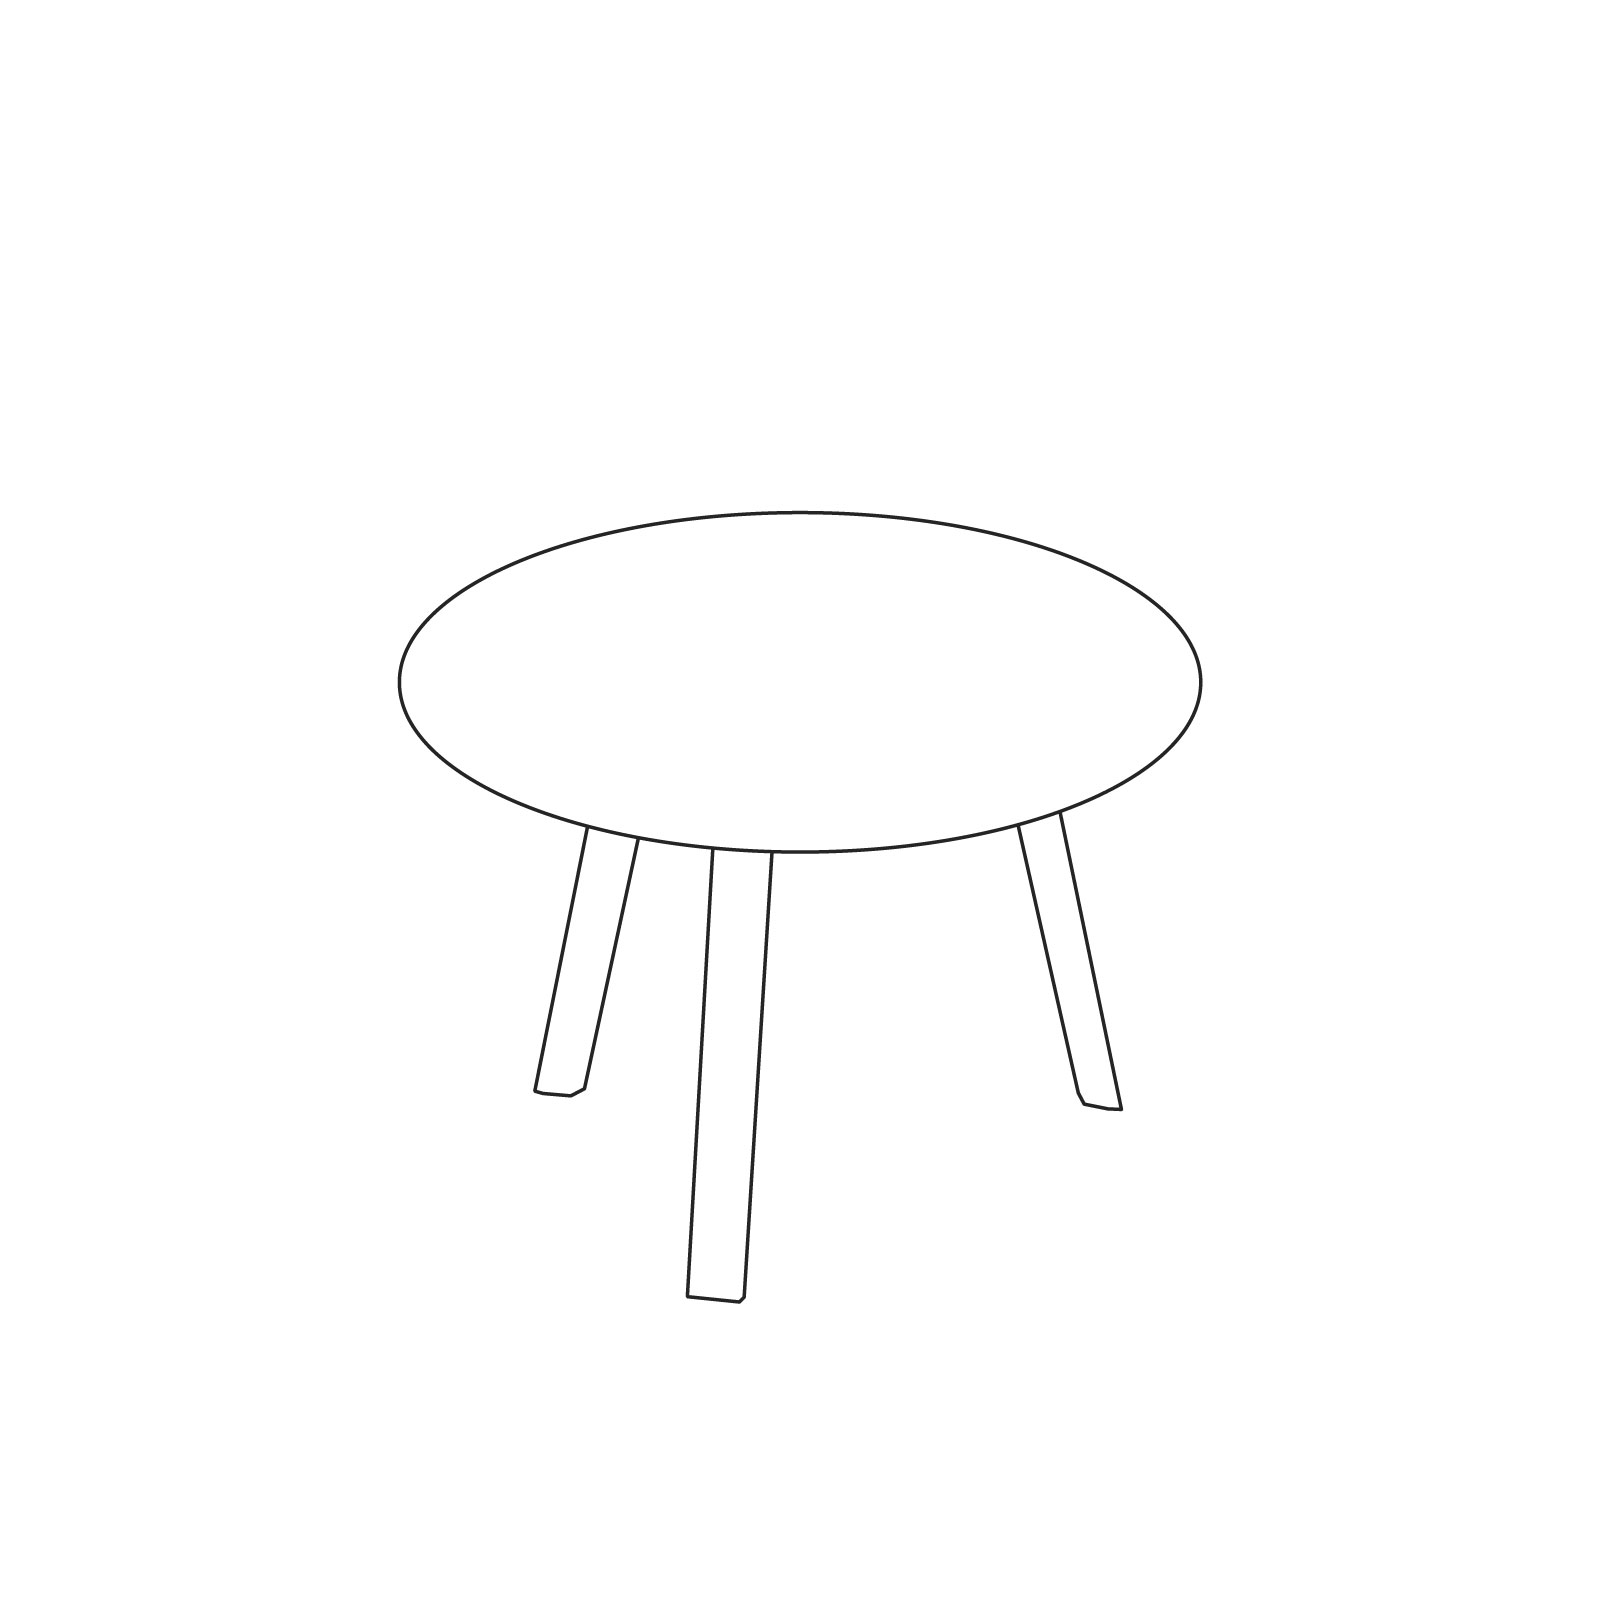 A line drawing of Bella Coffee Table–Low.